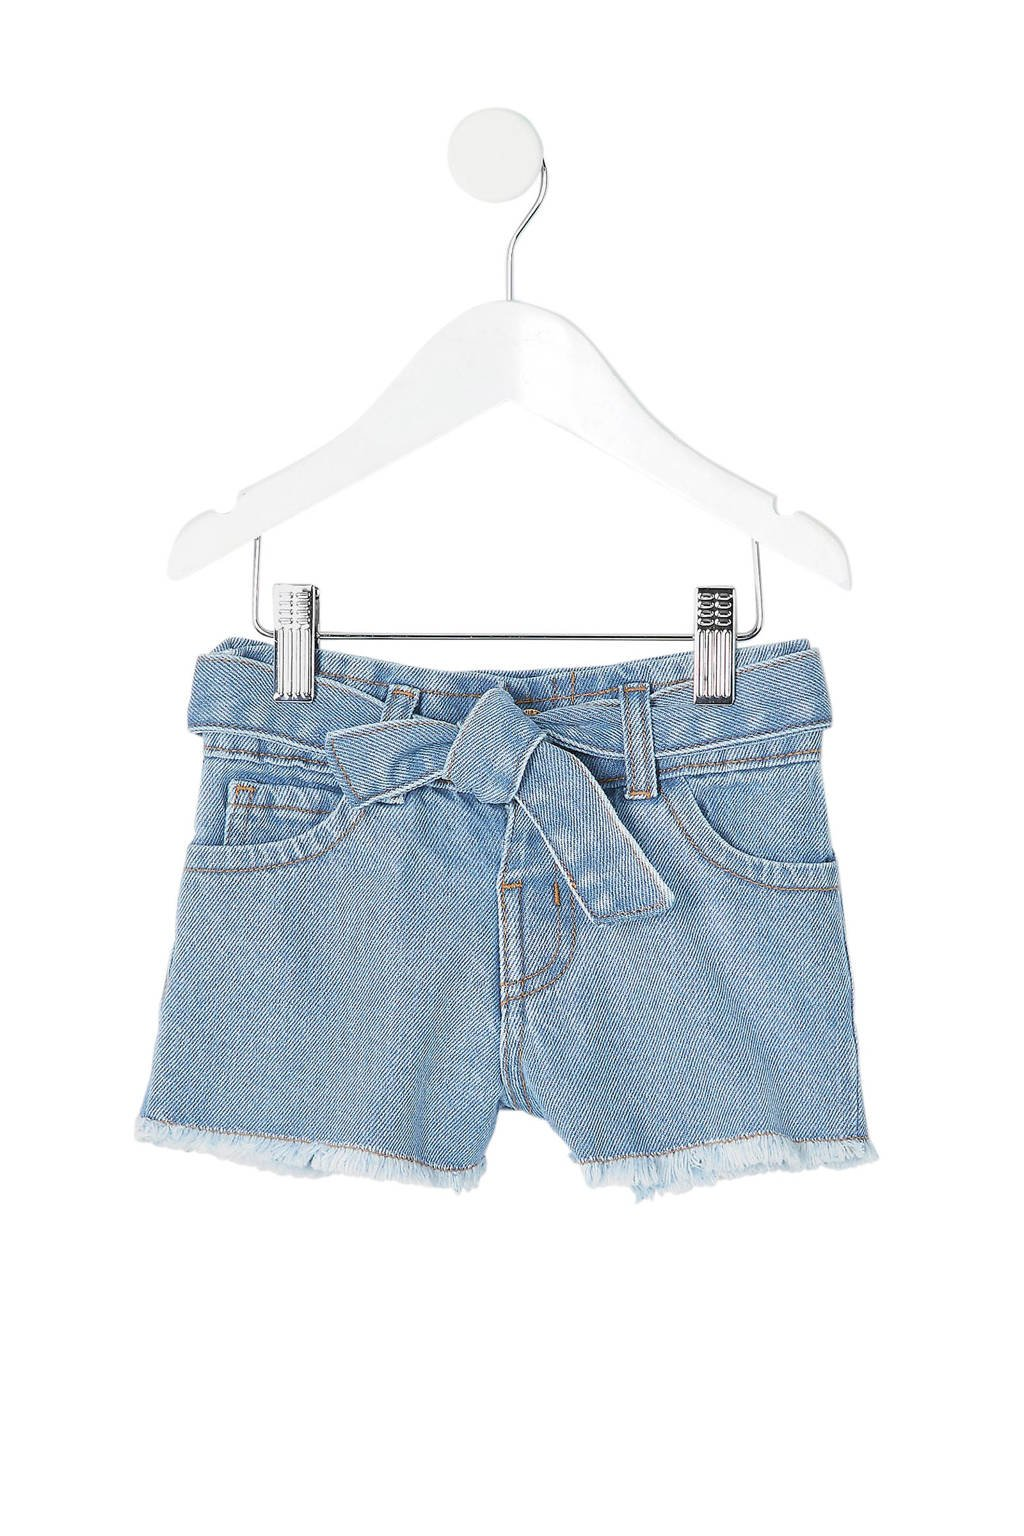 River Island jeans short, Light denim